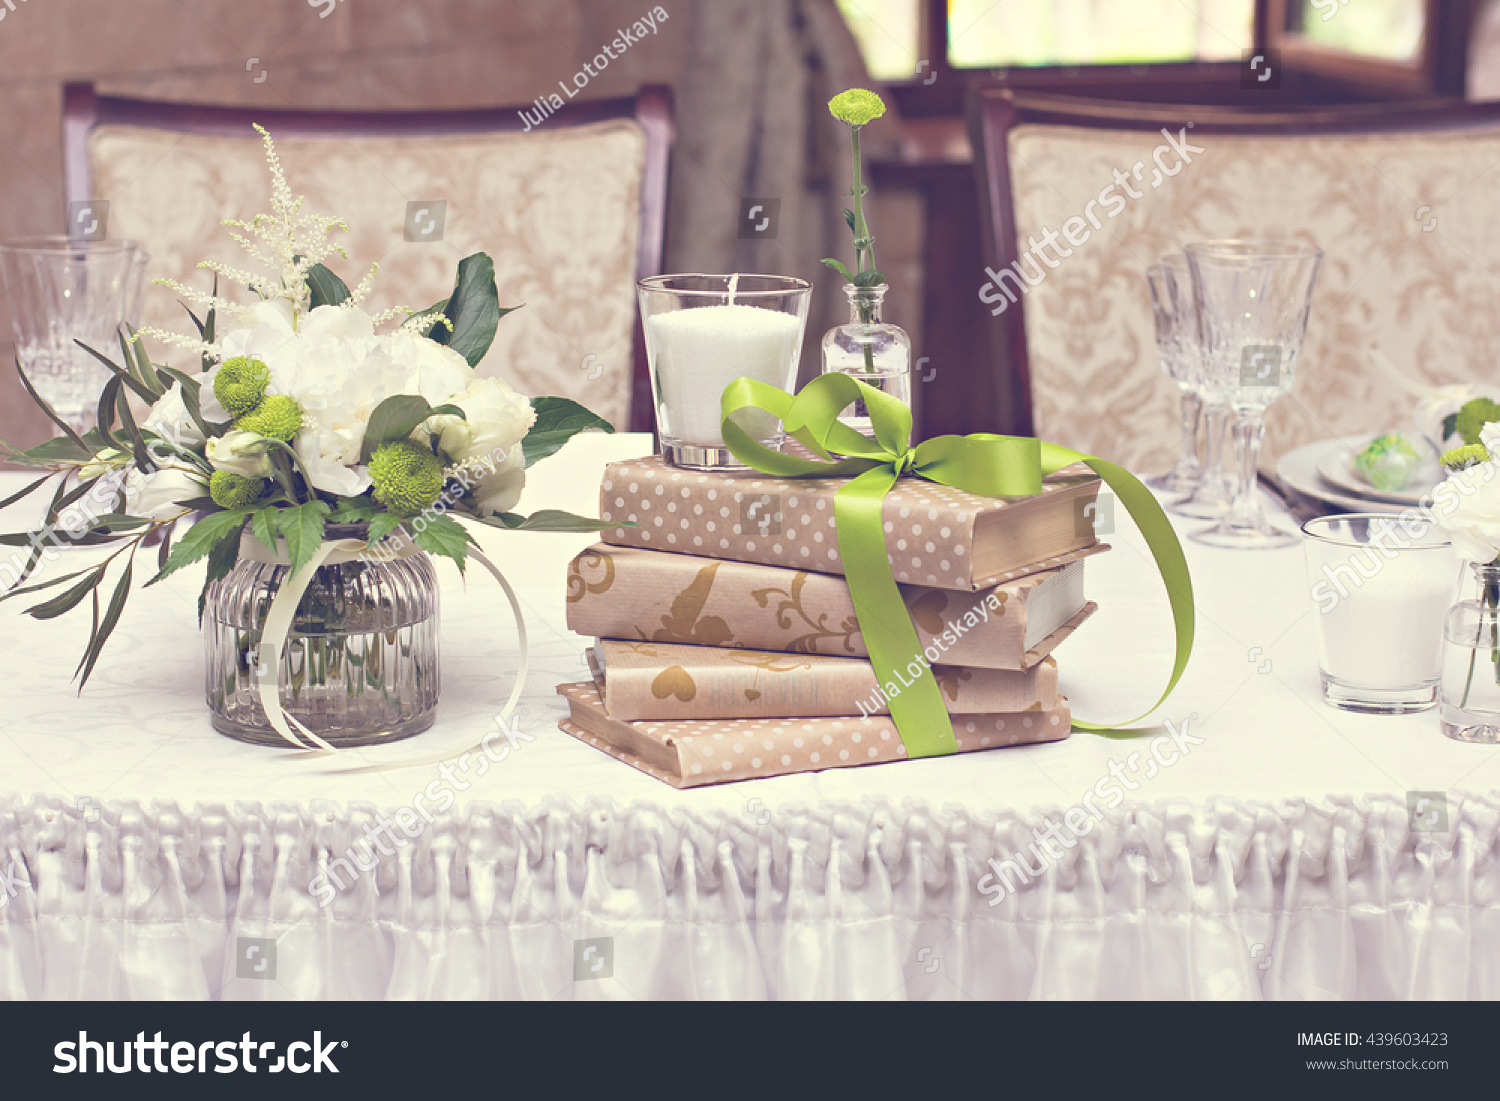 Bouquet White Flowers Wedding Table Decor Stock Photo Royalty Free